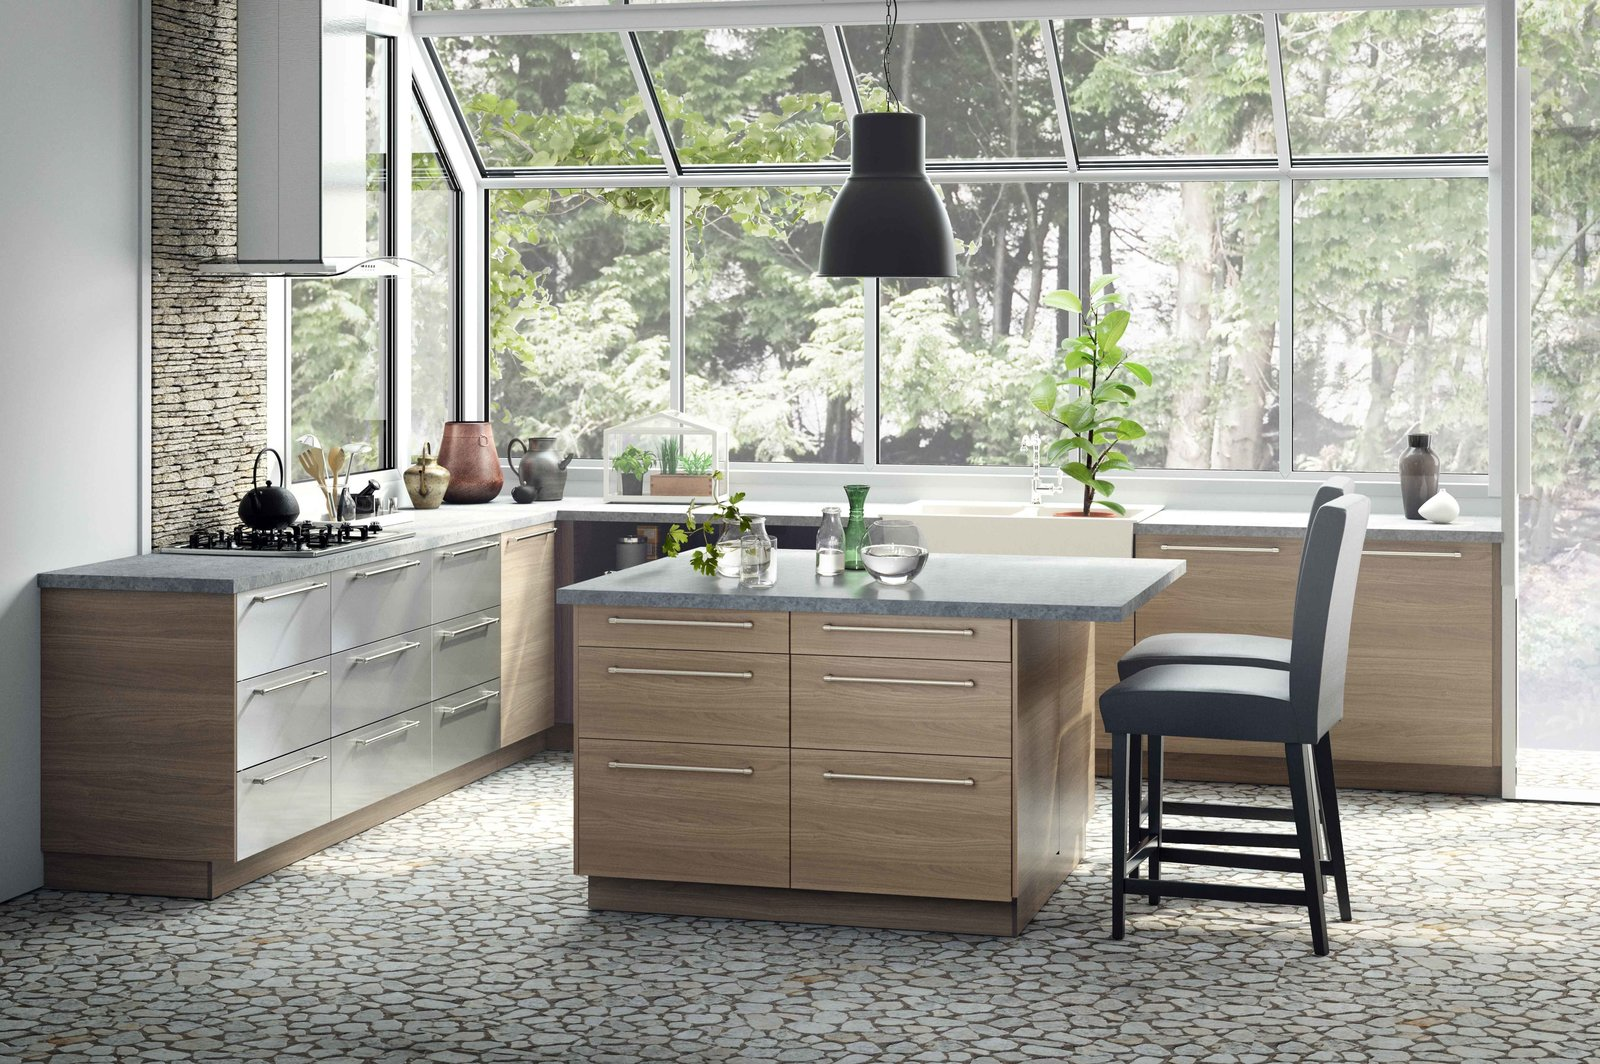 Offering a completely different look, this svelte version features an exhaust hood and modern hardware. You Can Now Build Your Entire Kitchen with Ikea (Appliances Too!) - Photo 2 of 7